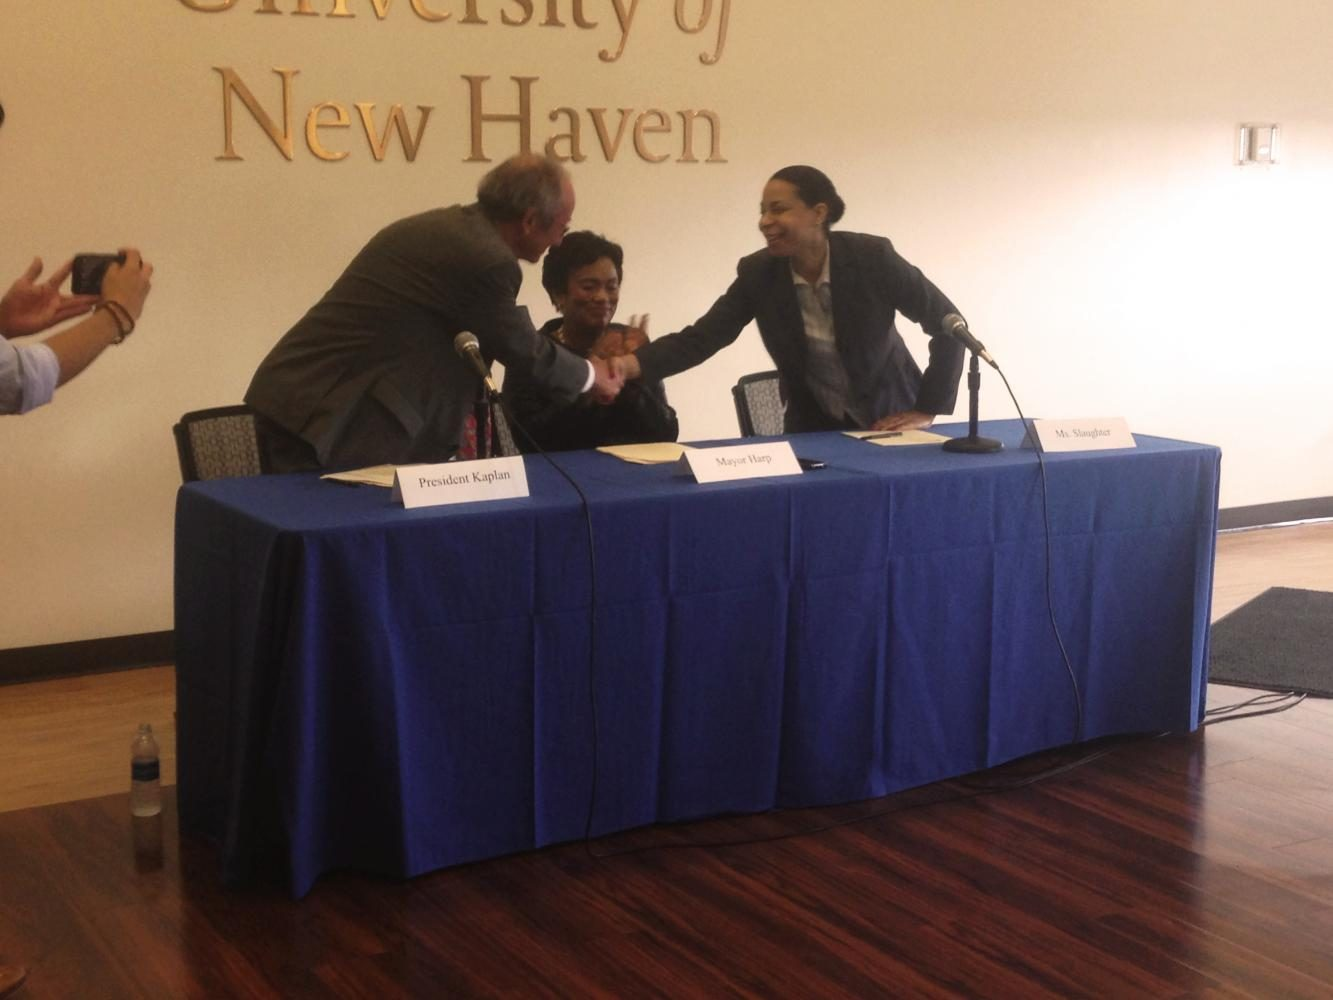 University+Enters+Partnership+With+New+Haven+Sister+Cities